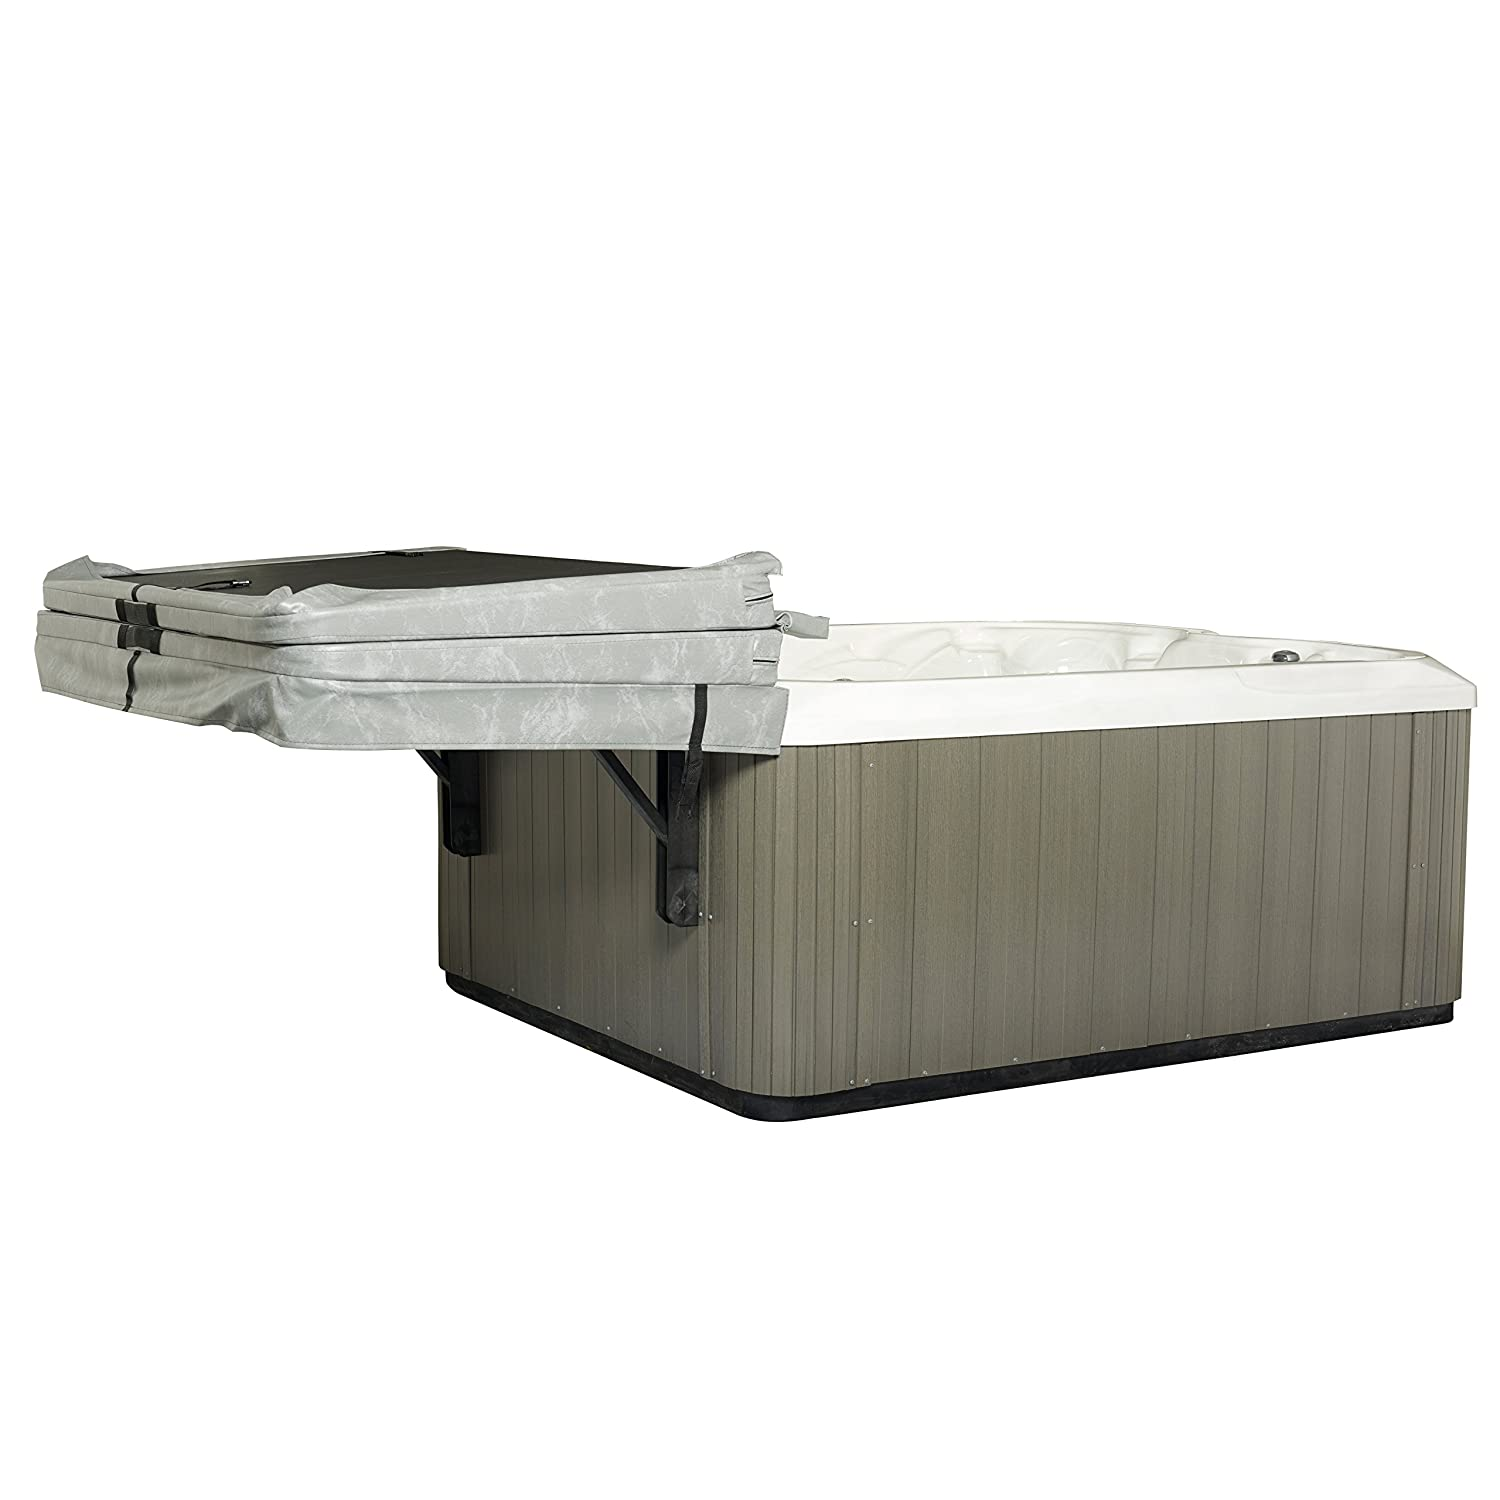 Dual Roller Retractable Arms The Slider Spa Cover No-Lift Remover /& Storage System